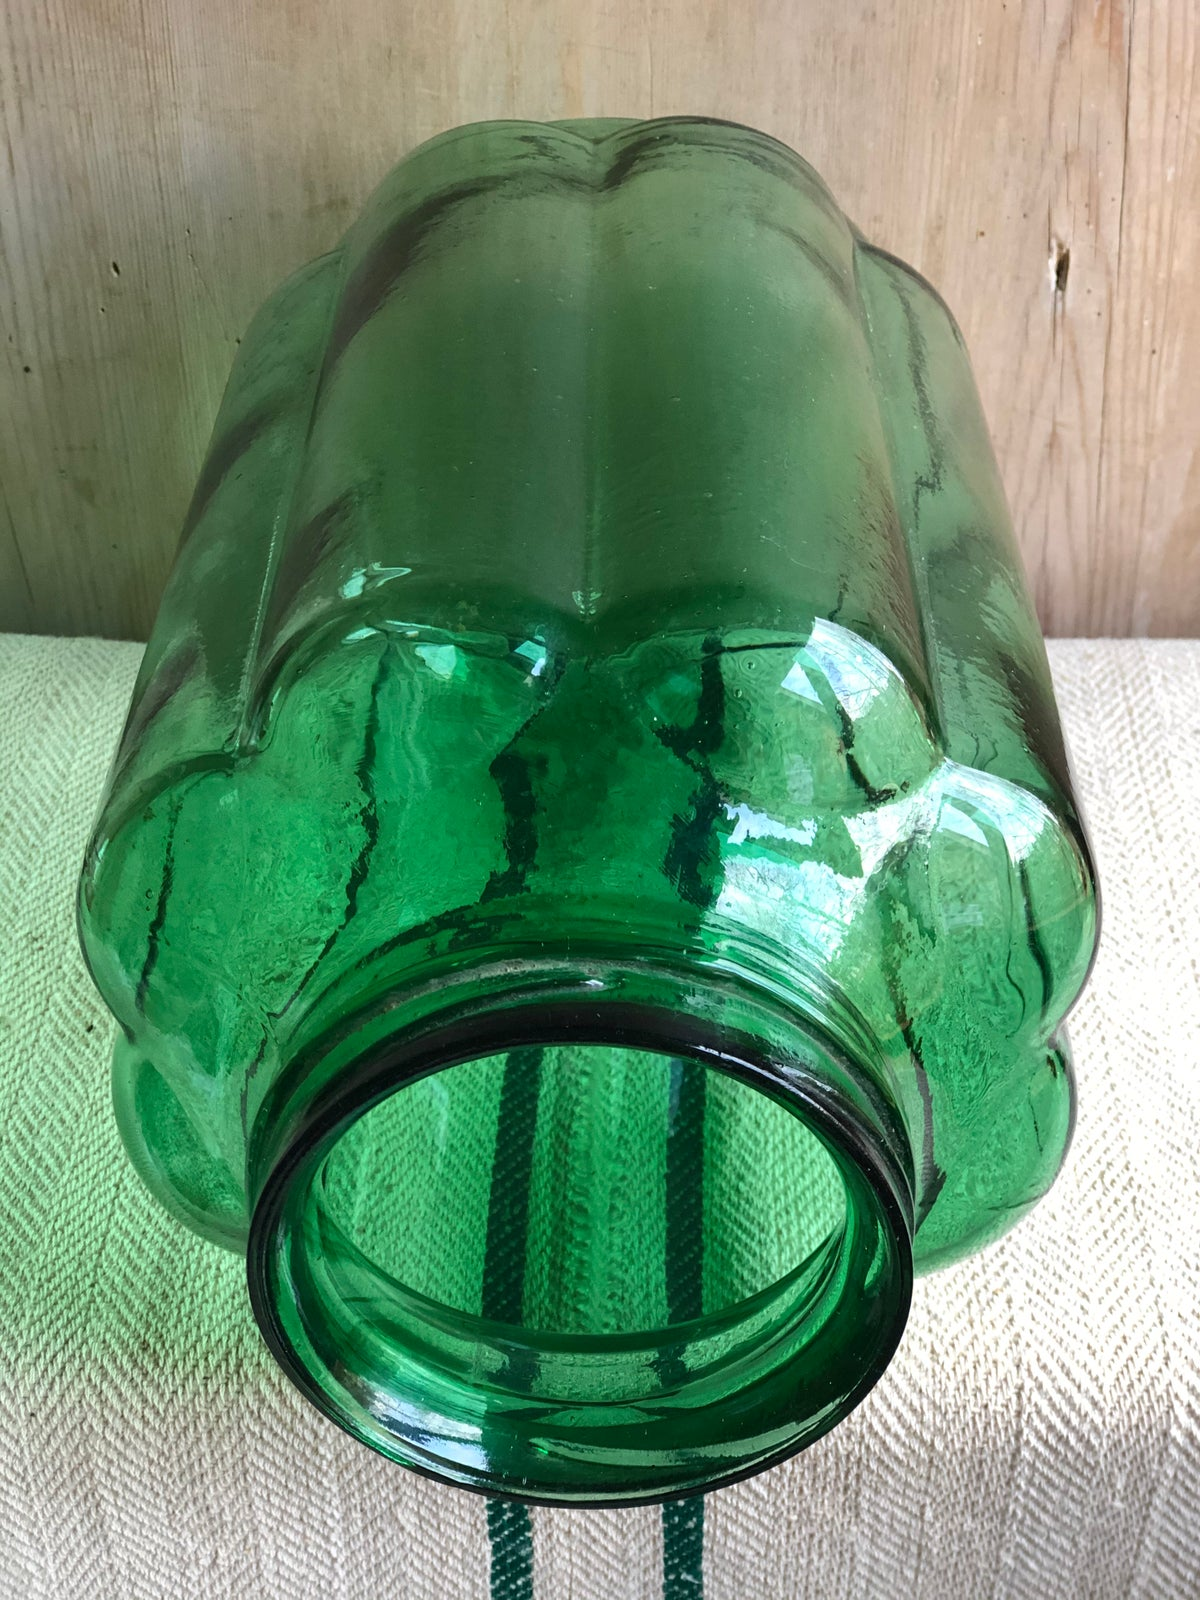 Image of Green Hungarian pickling jar